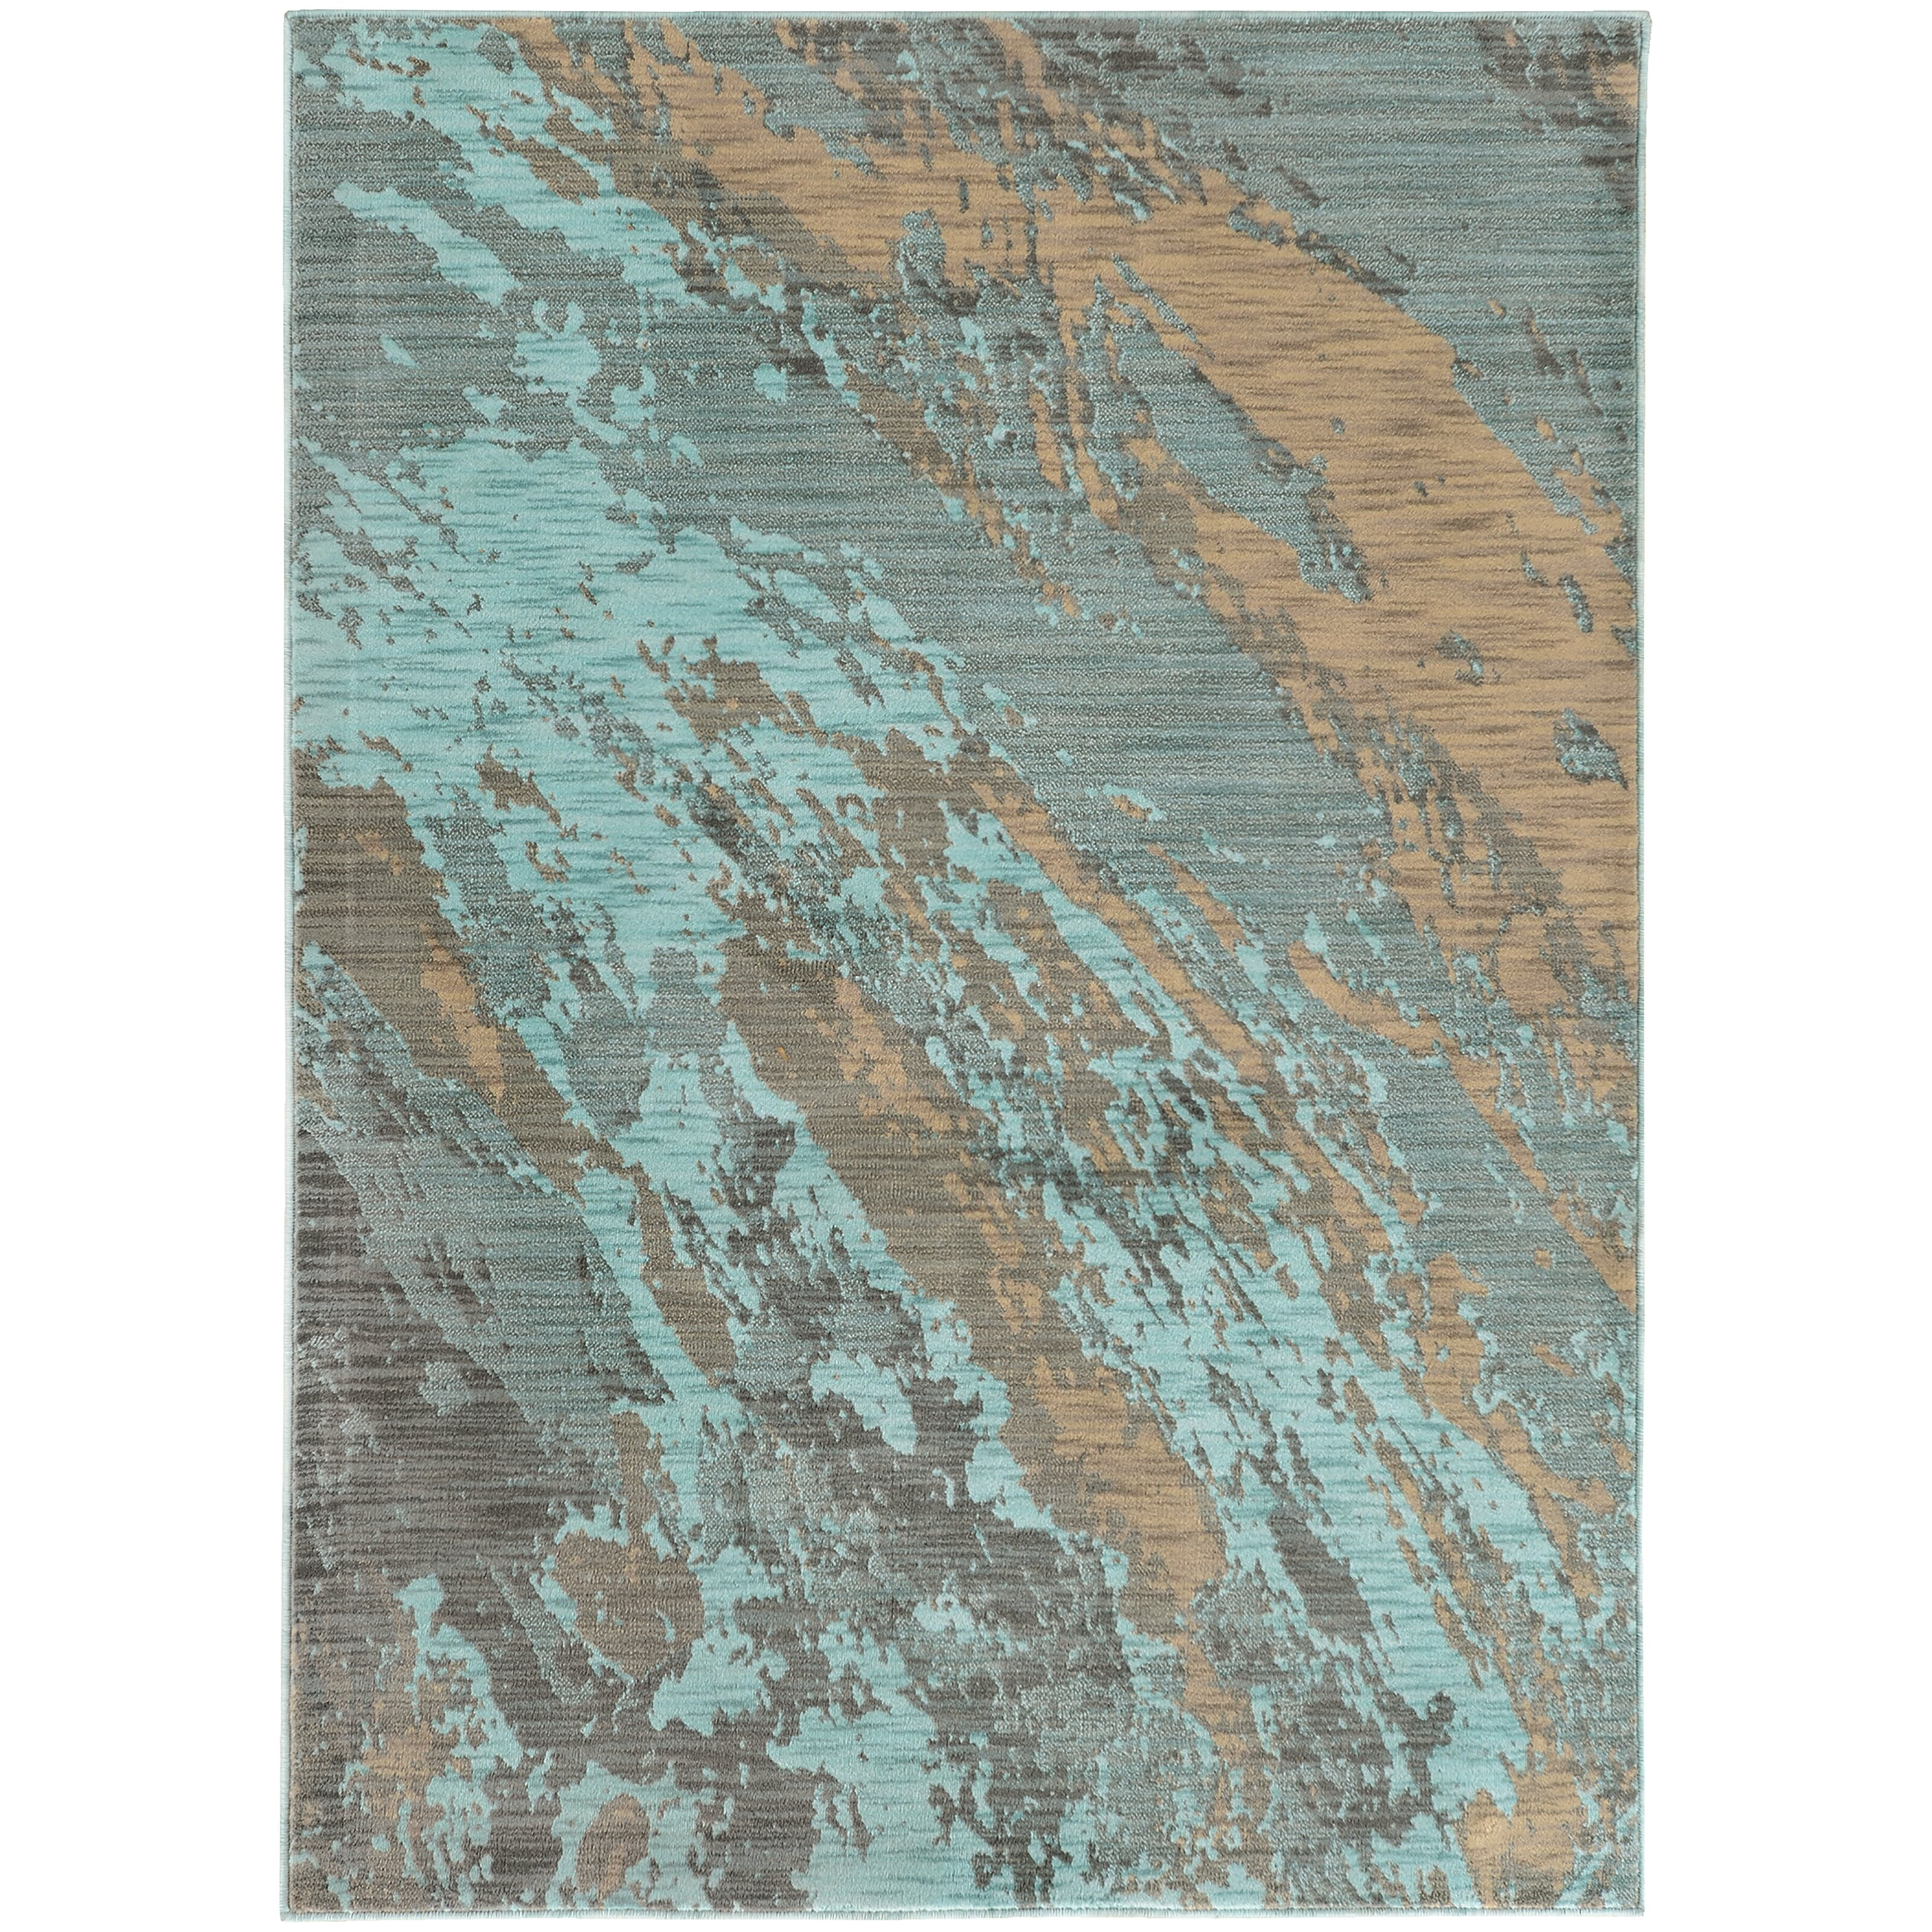 The Conestoga Trading Co. Agave Marble Teal/Gray Area Rug